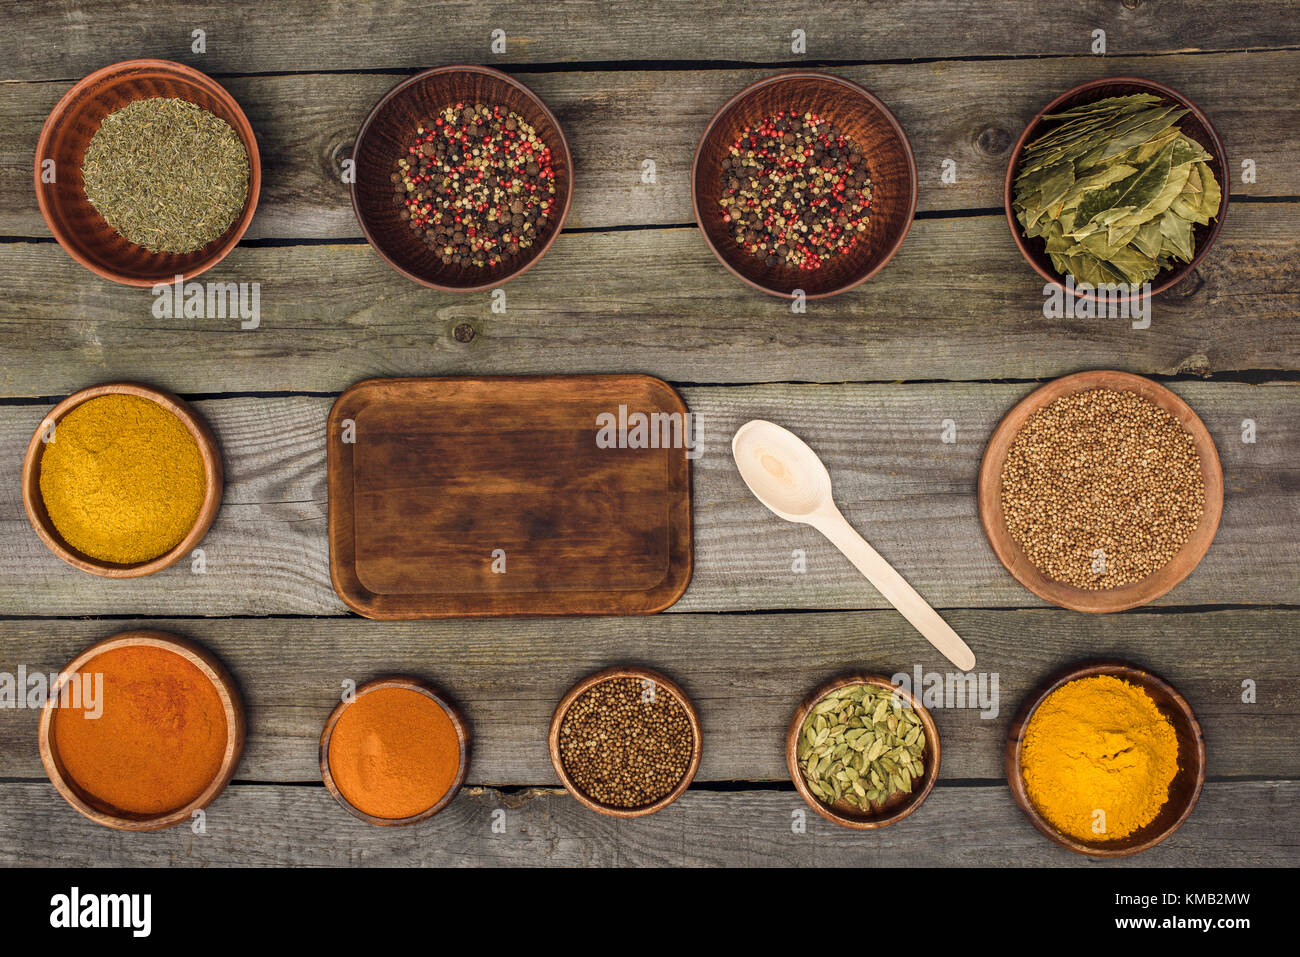 board and spoon among bowls with spices - Stock Image